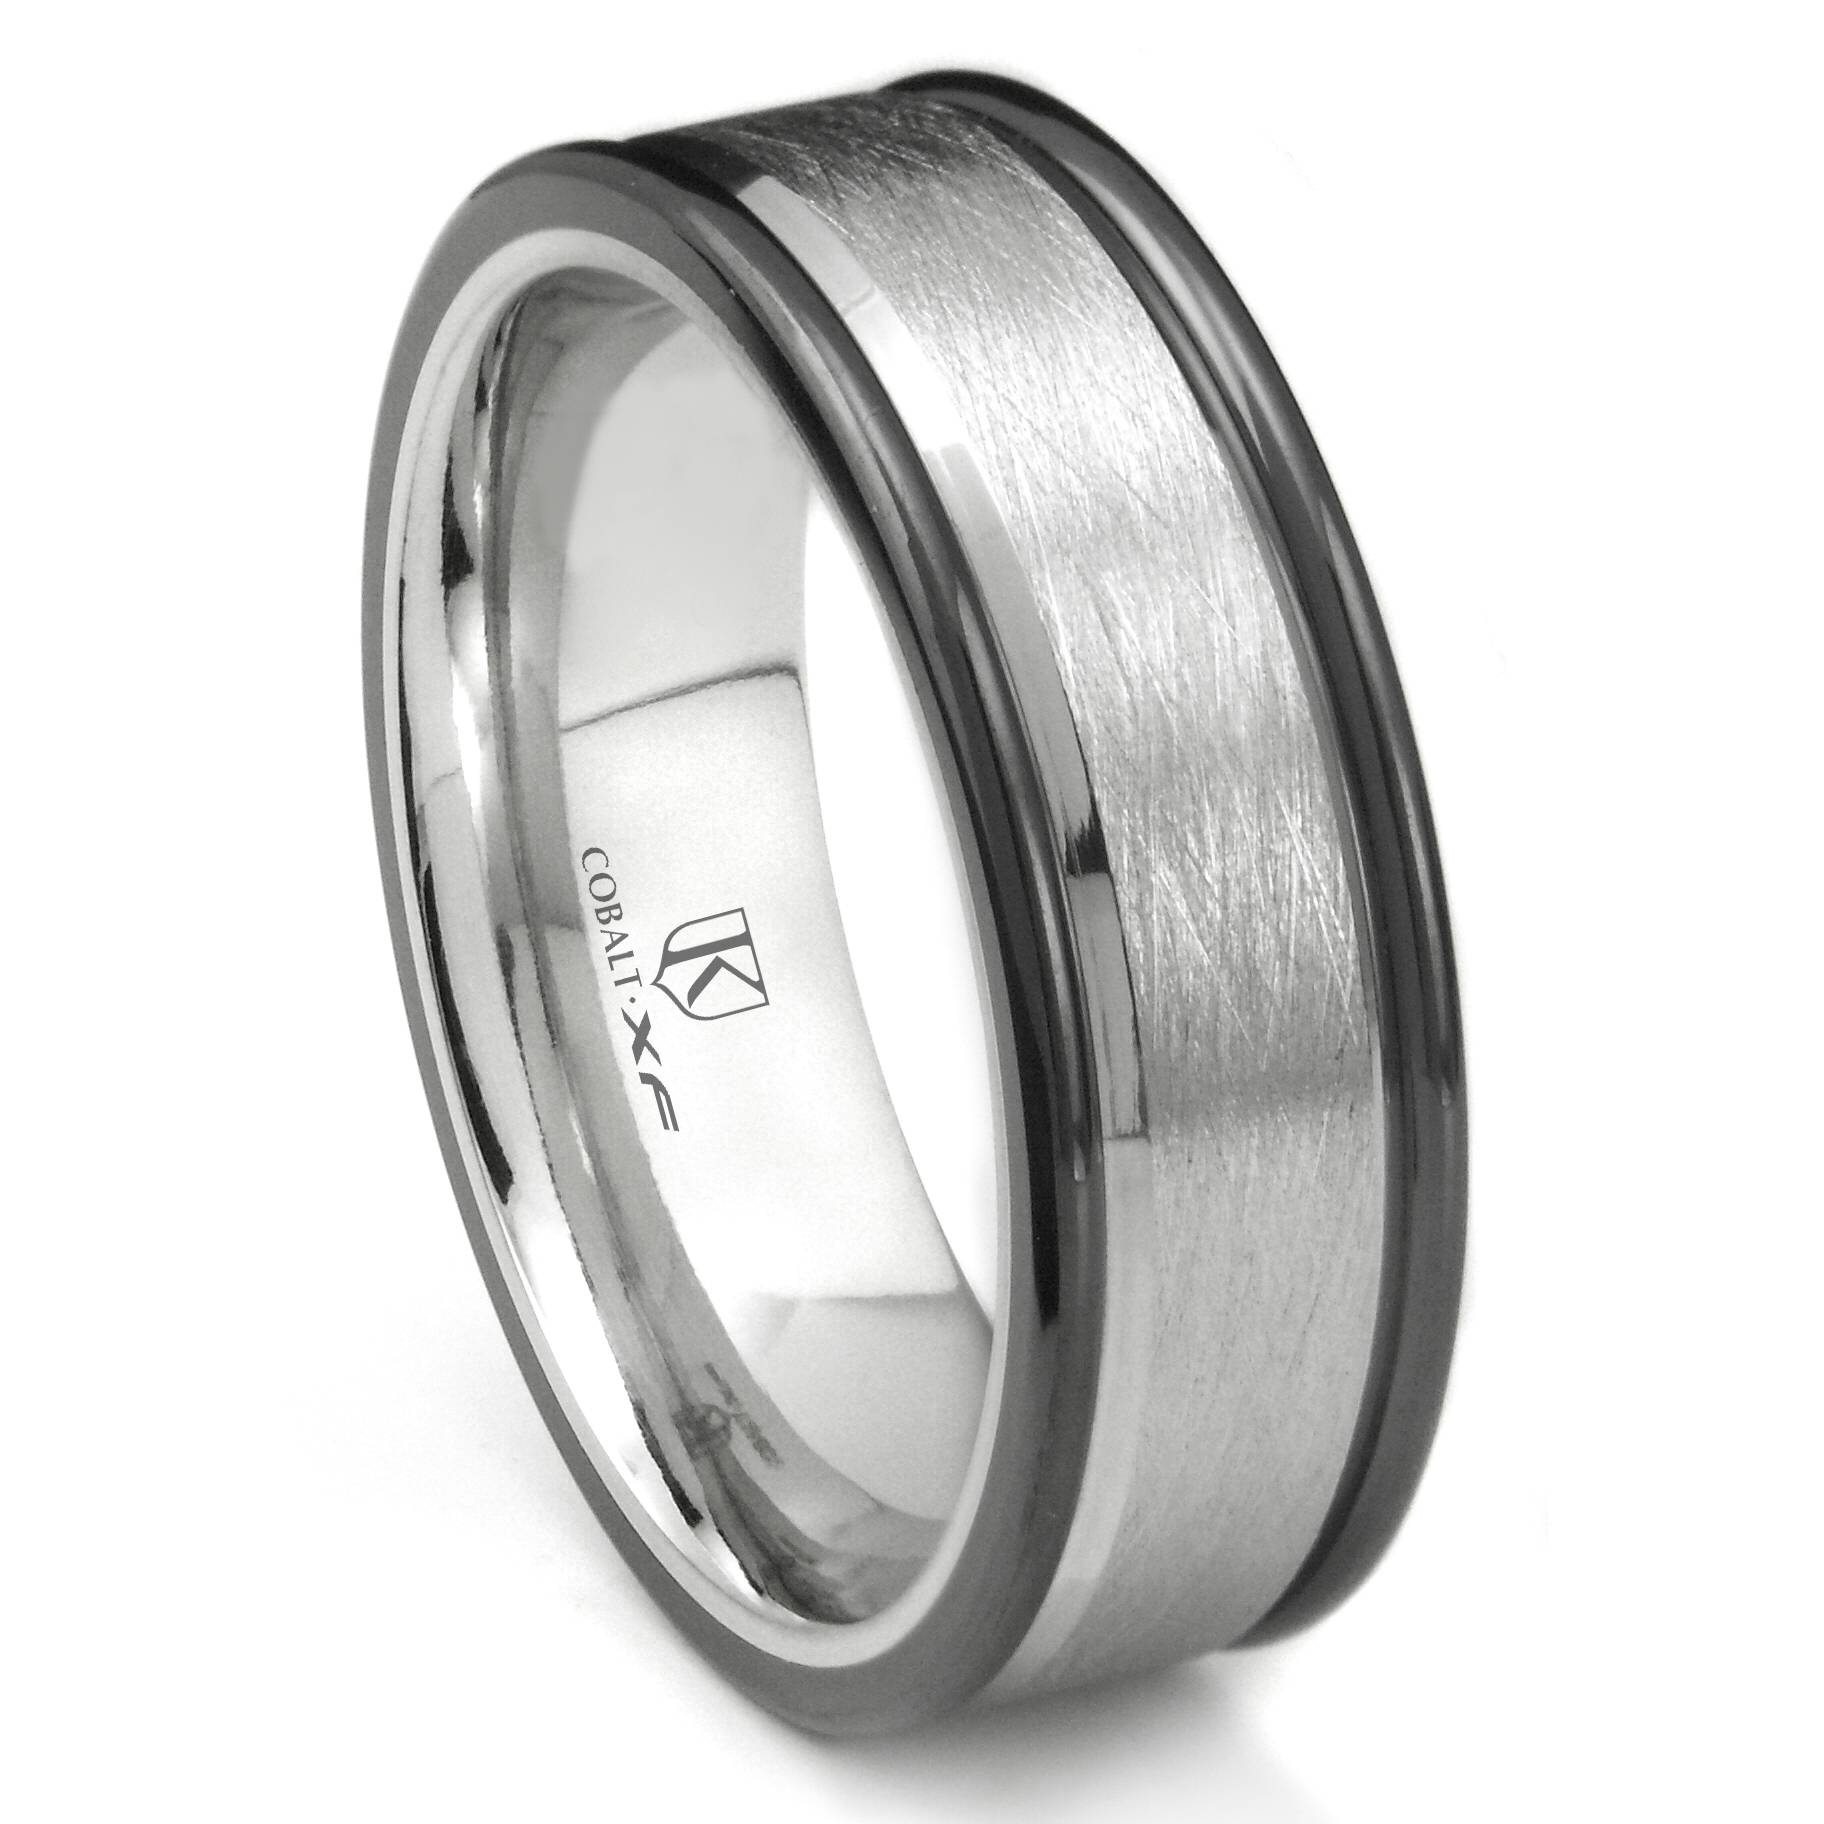 Cobalt Xf Chrome 8Mm Italian Di Seta Finish Two Tone Wedding Band Ring With Two Tone Men Wedding Bands (Gallery 12 of 15)